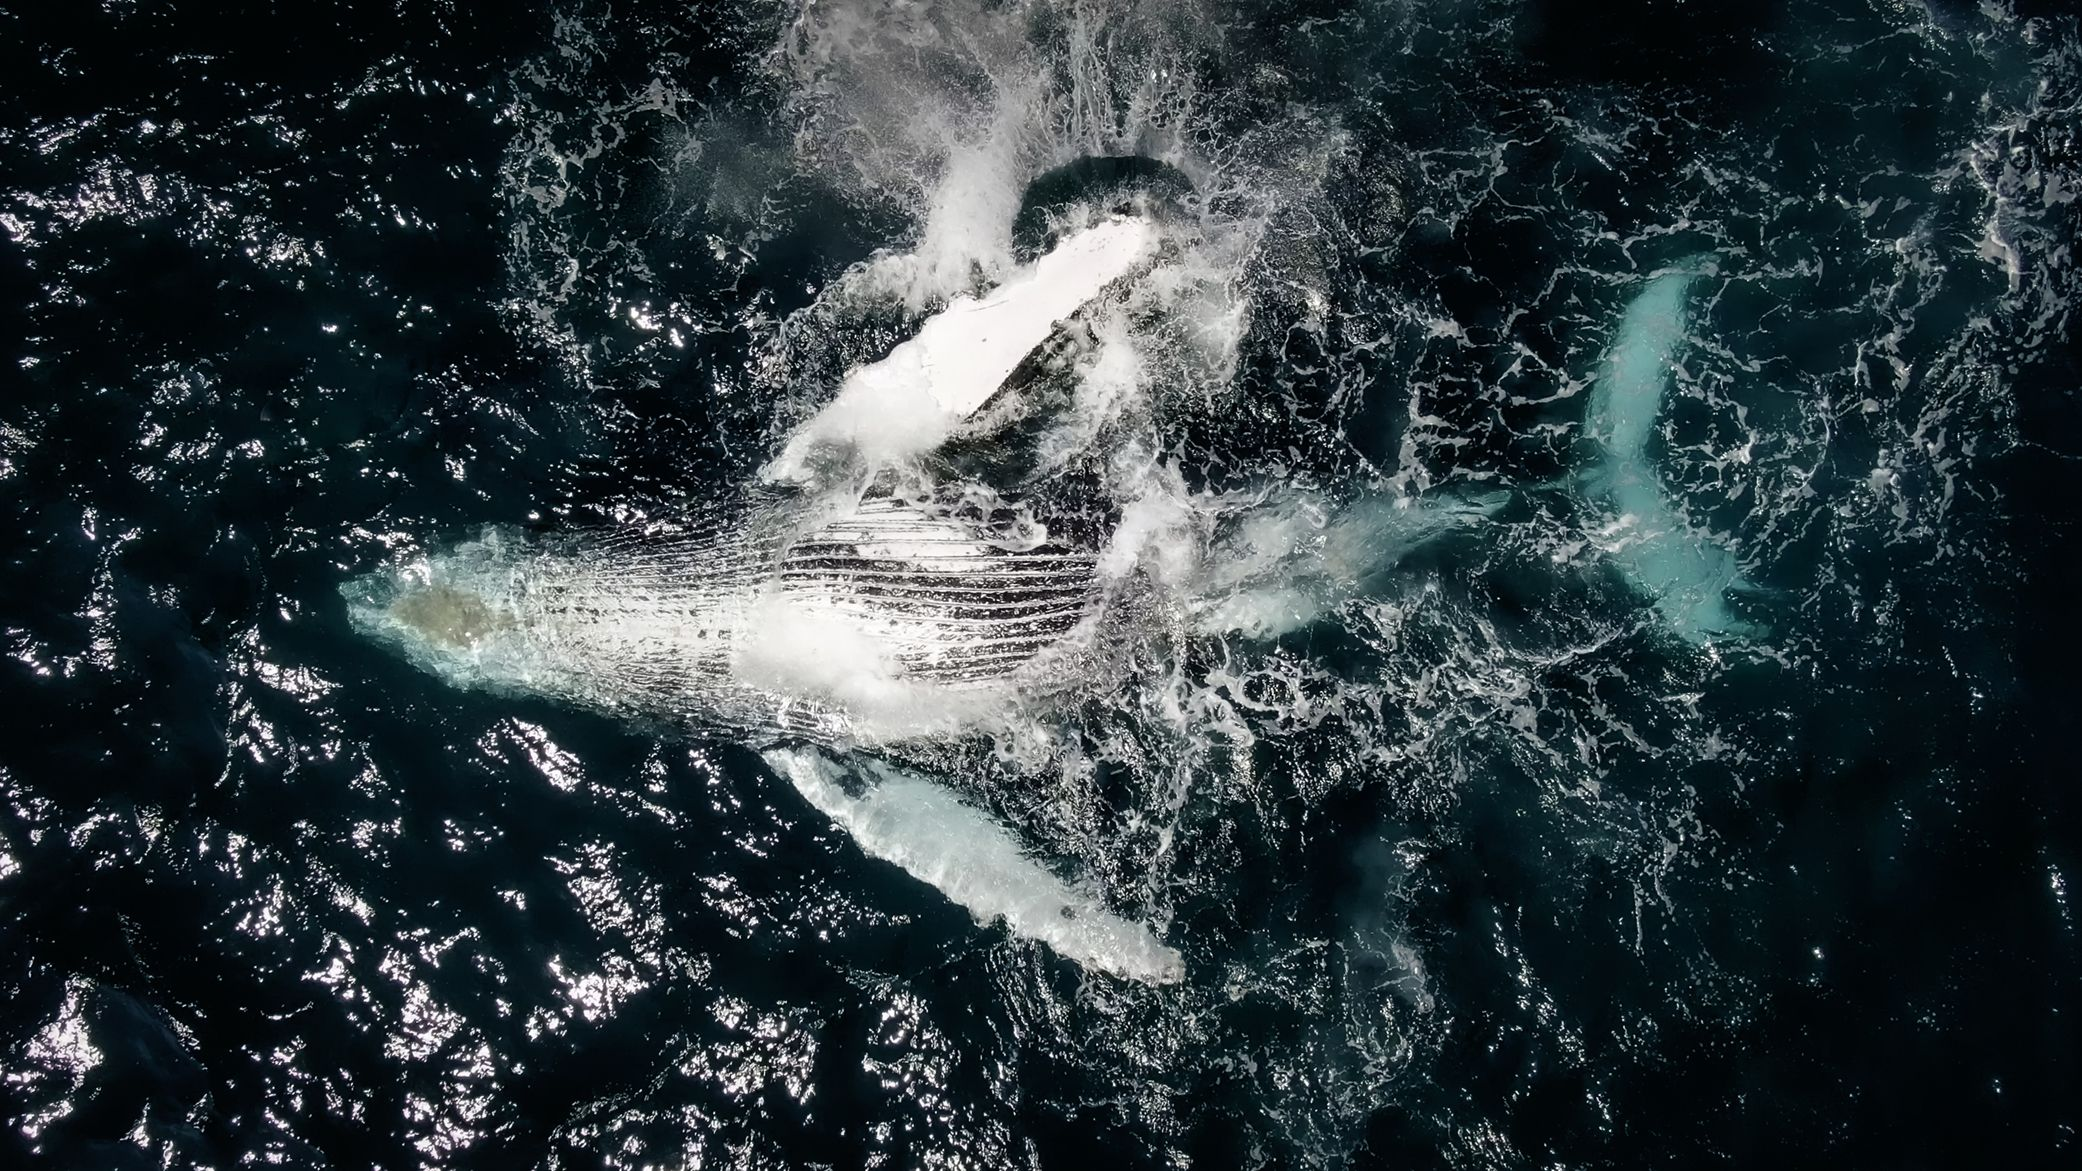 A photo of a whale breaching, belly first